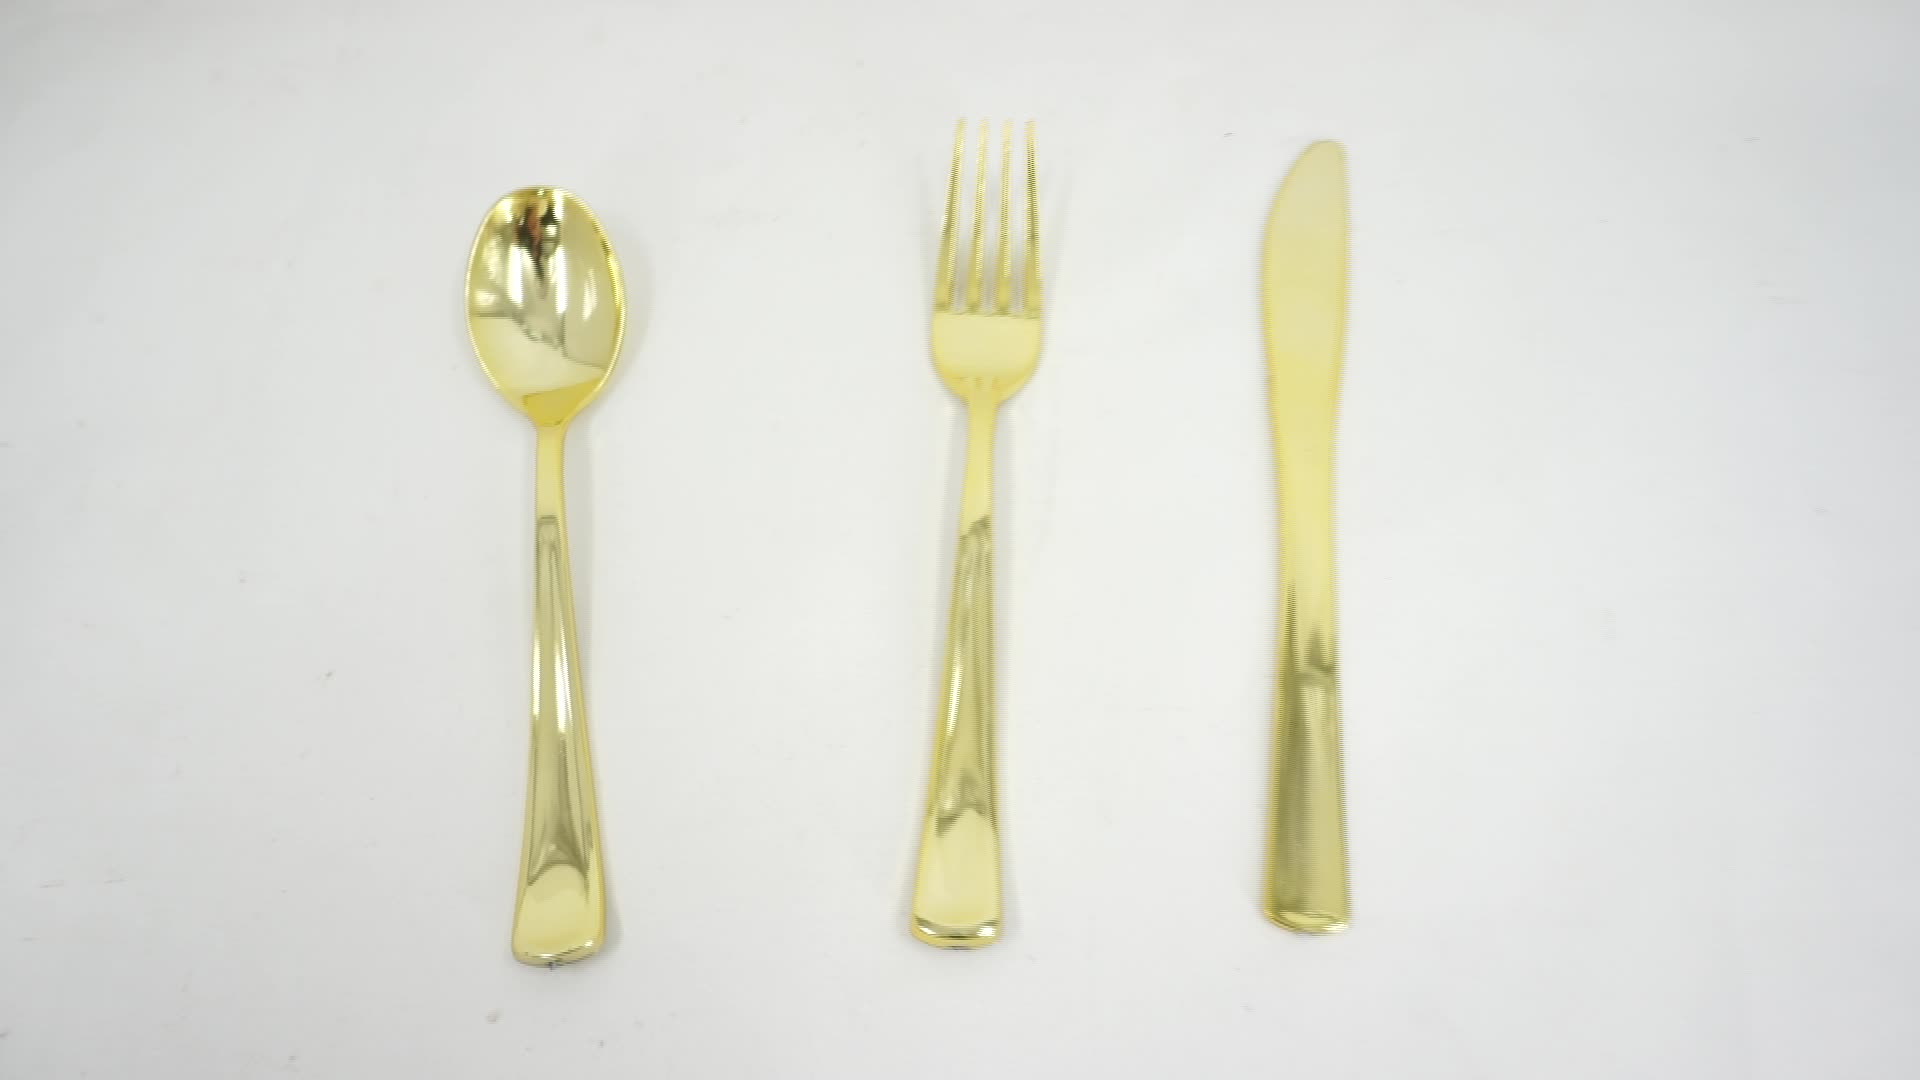 450 Gold Plastic Cutlery Disposable Silverware 150 Forks 150 Spoons 150 Knives